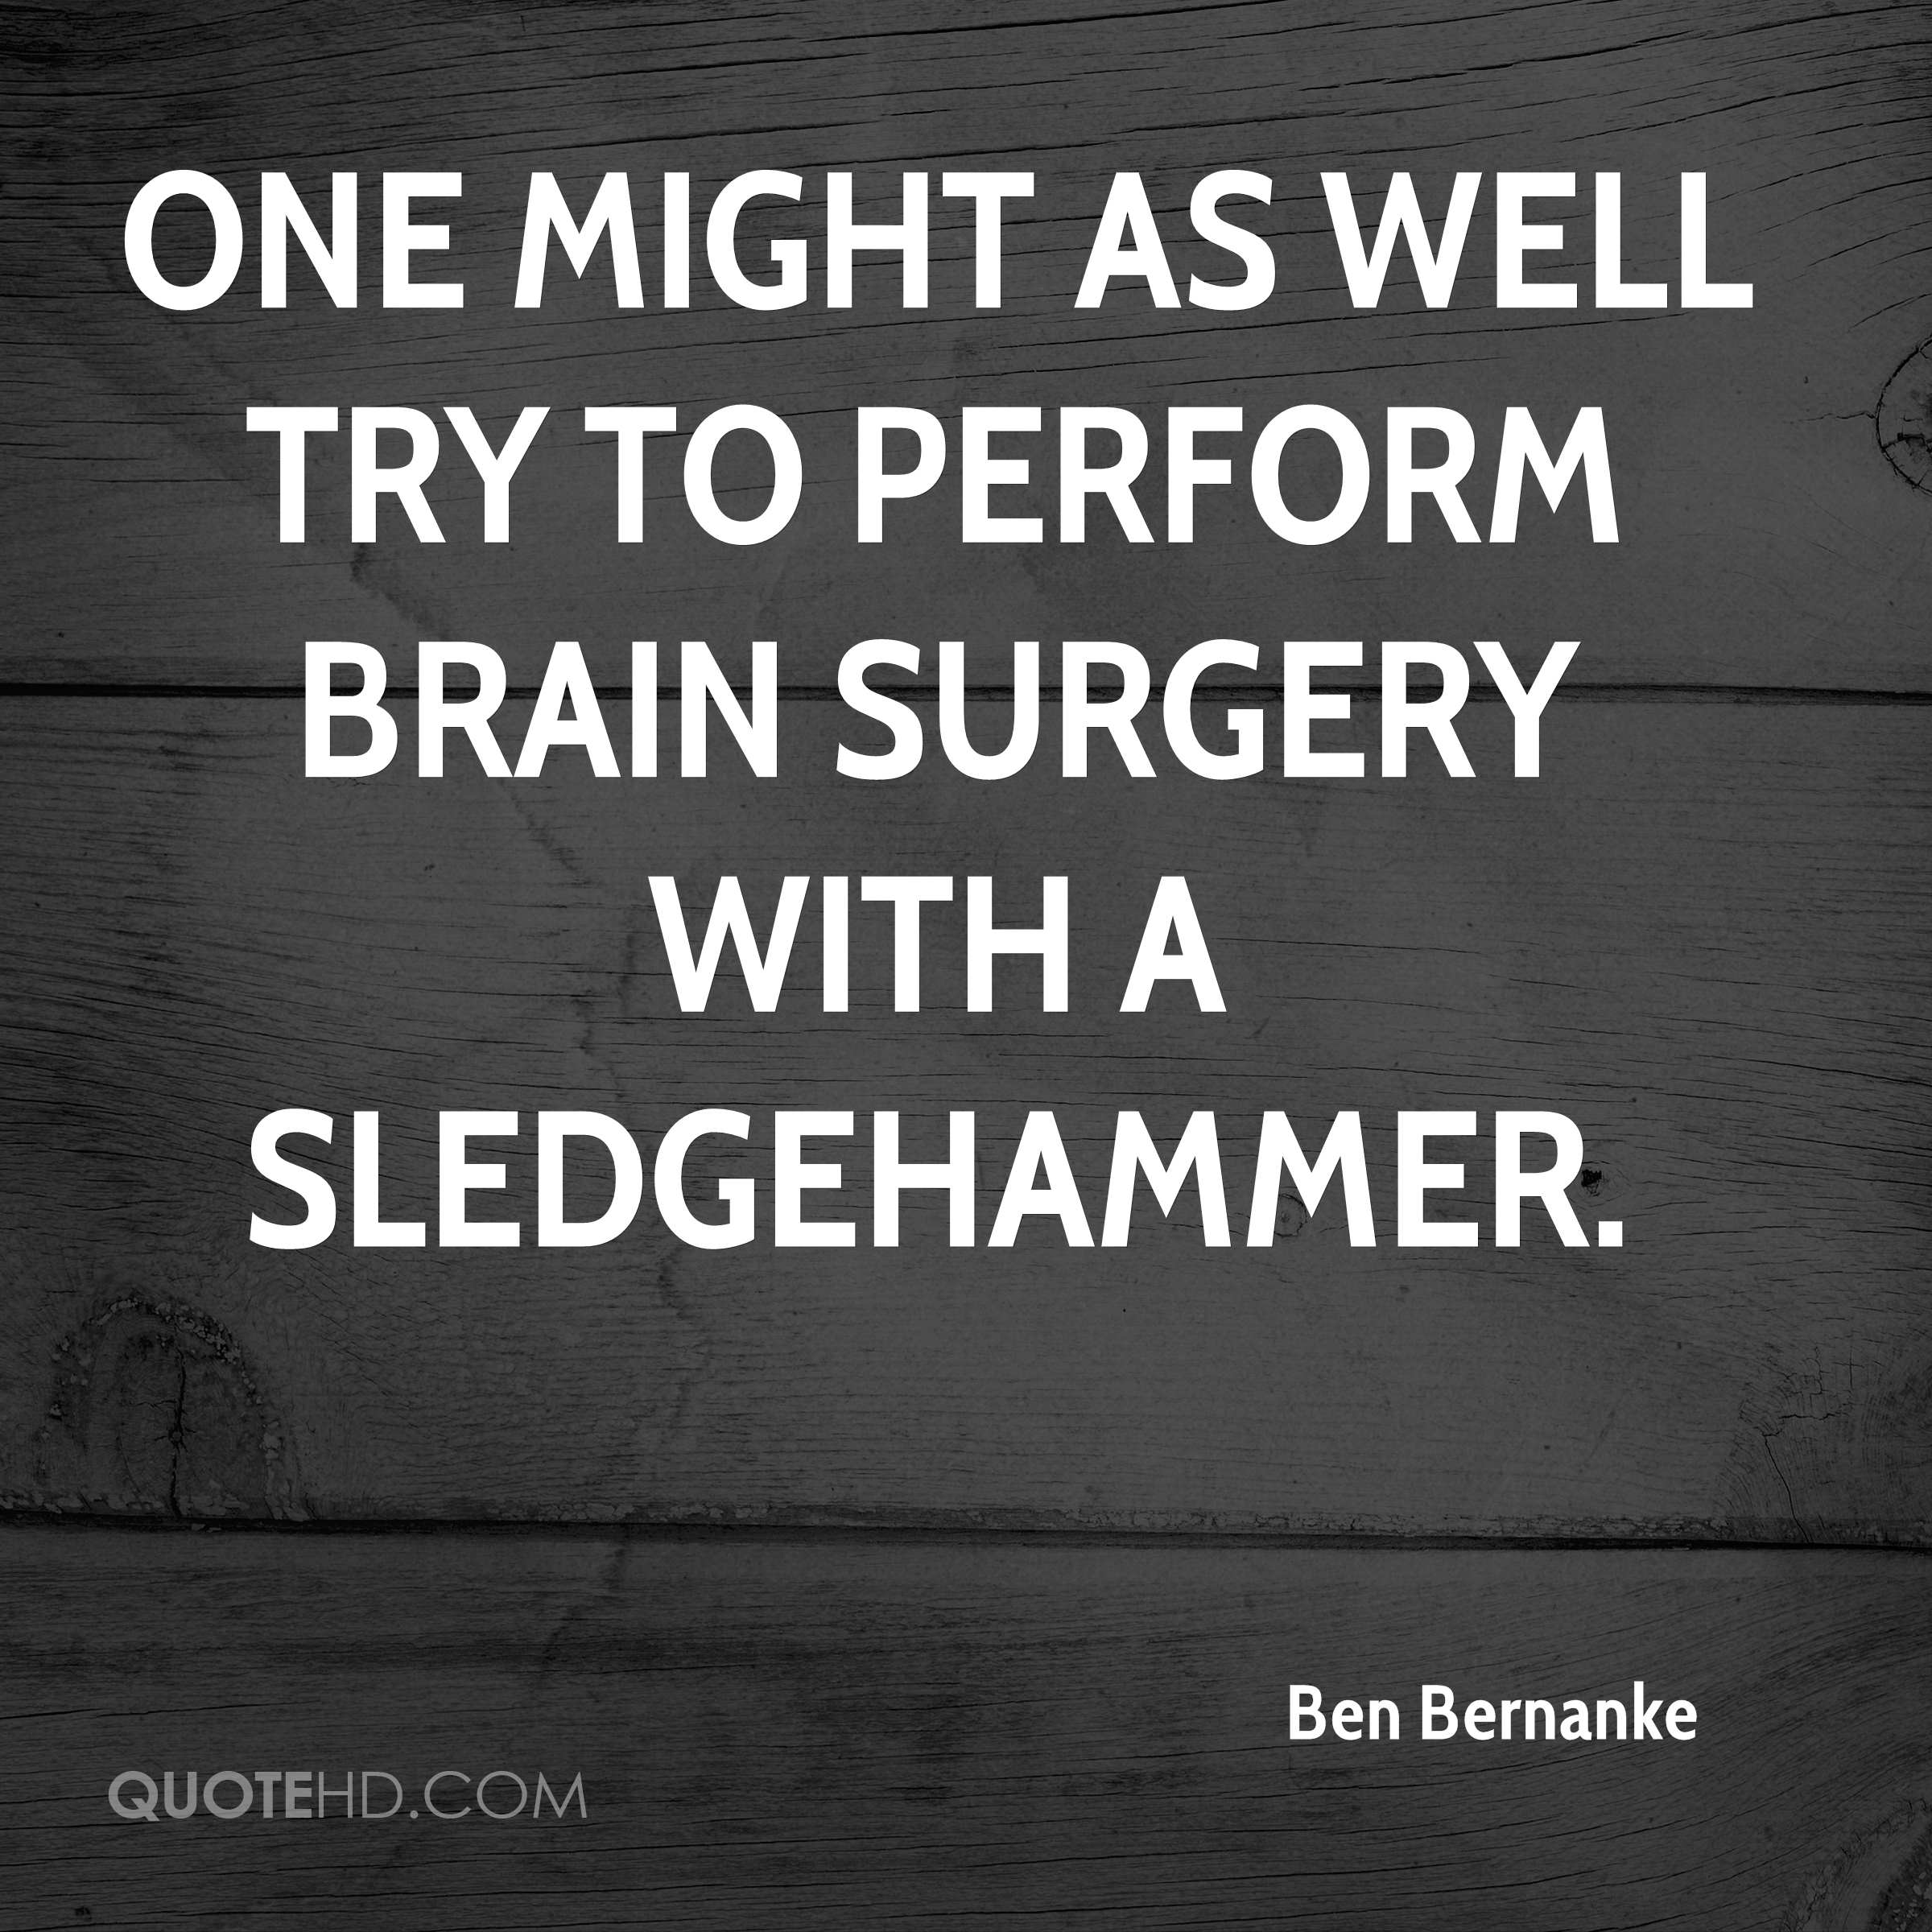 One might as well try to perform brain surgery with a sledgehammer.